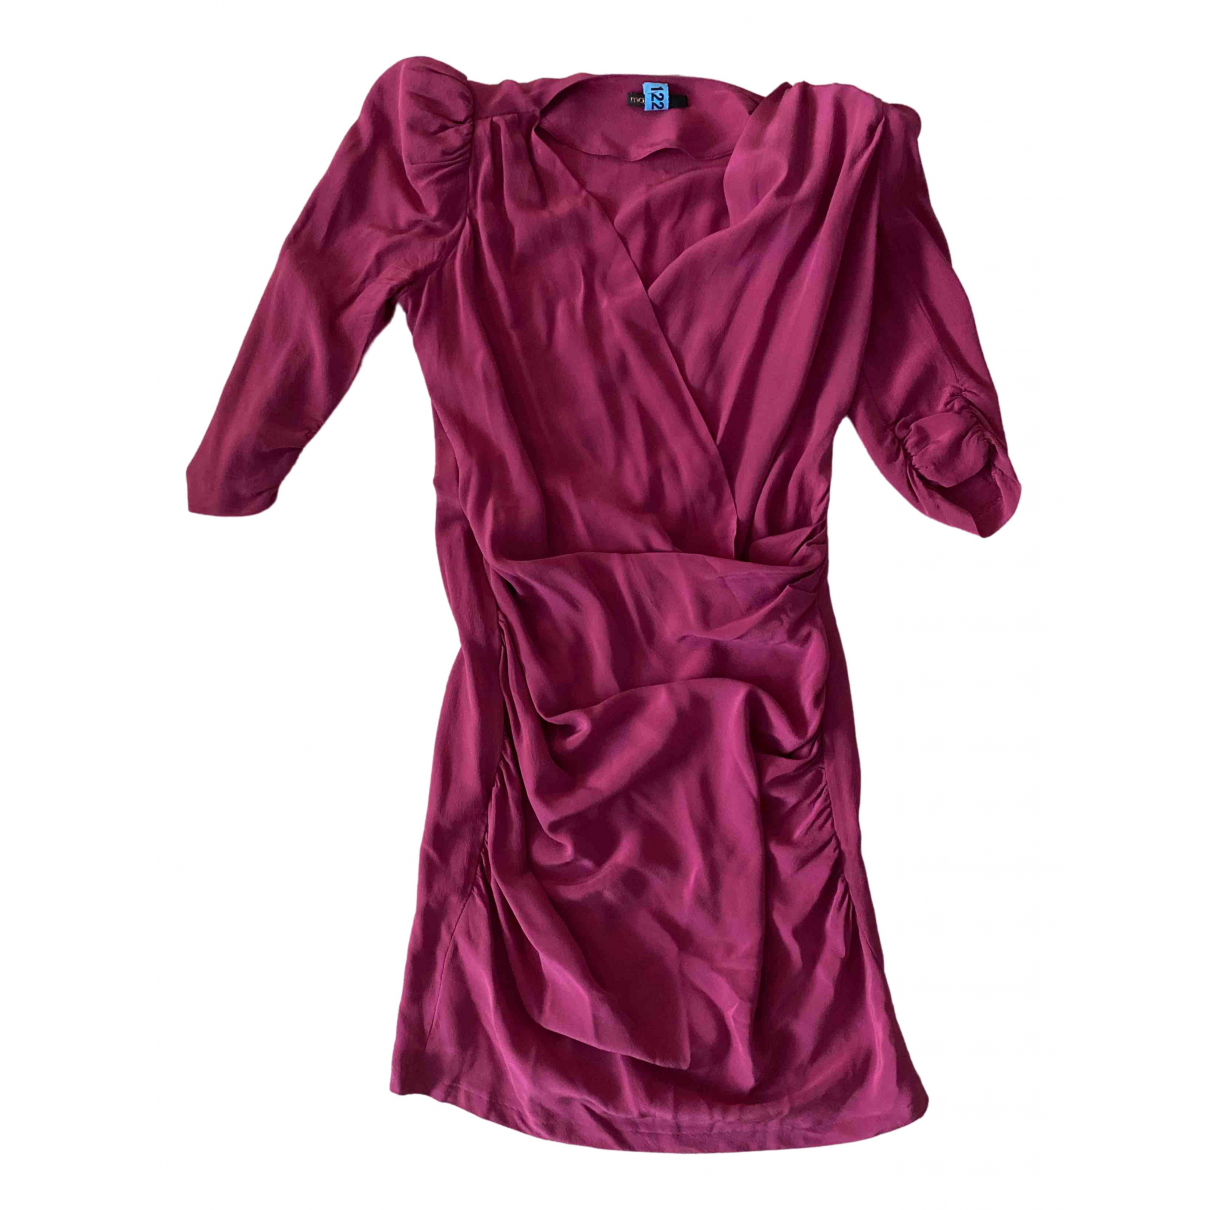 Maje \N Pink Silk dress for Women 38 FR